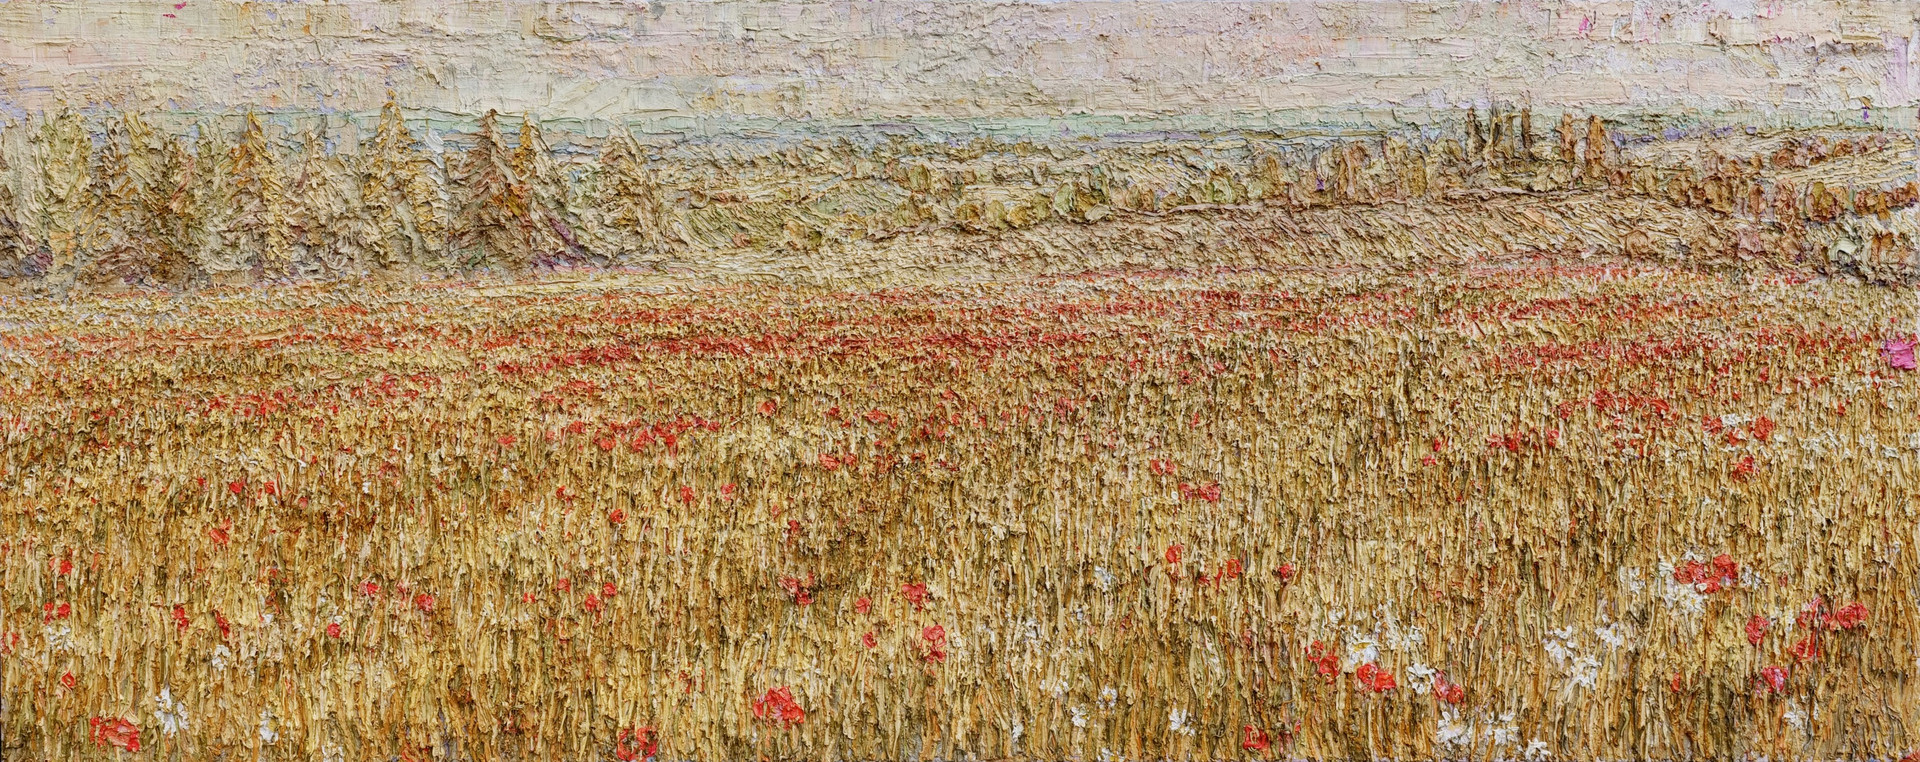 'Poppies, Stearsby, North Yorkshire, 202